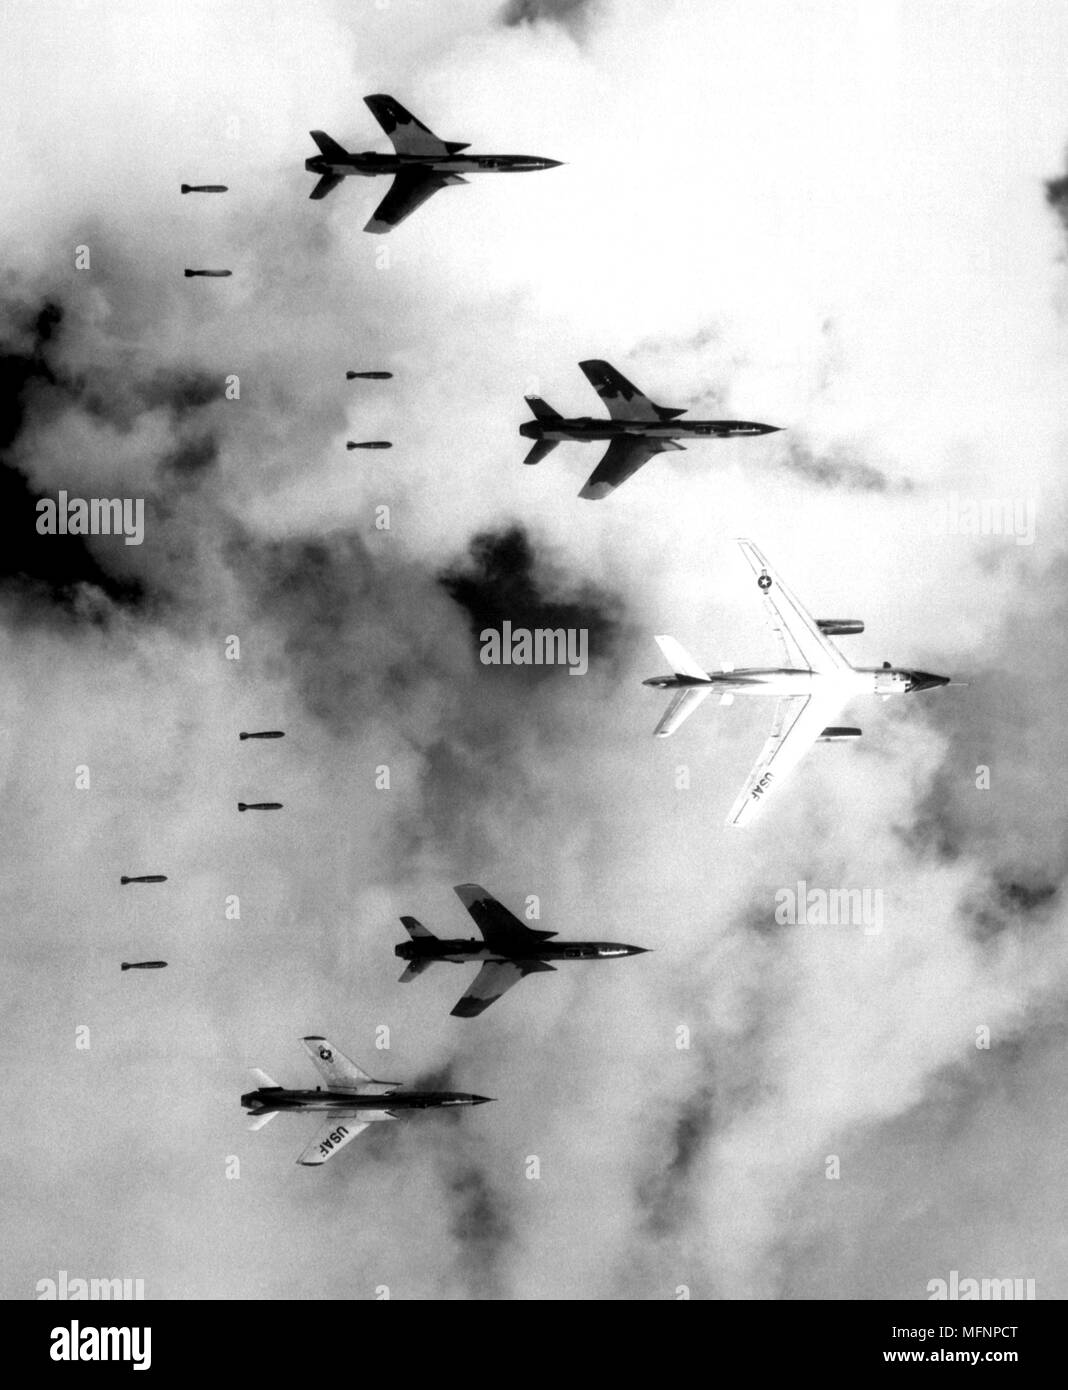 Flying under radar control with a B-66 Destroyer, Air Force F-105 Thunderchief pilots bomb a military target through low clouds over the southern panhandle of North Vietnam, 14 June 1966. - Stock Image